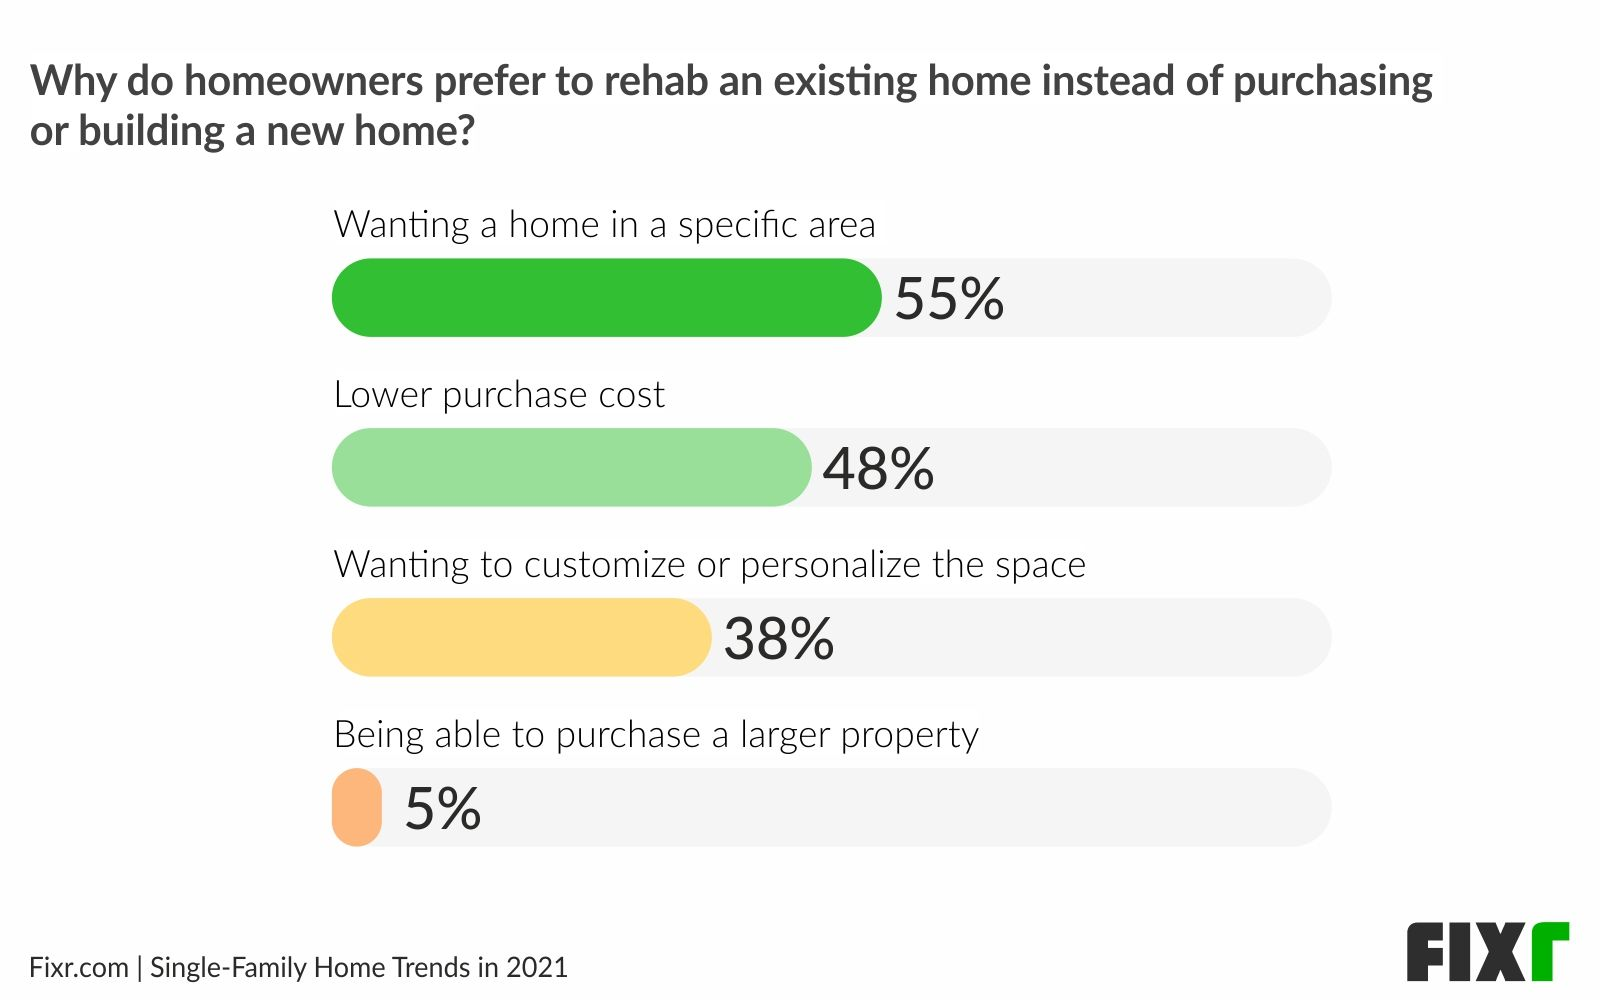 Home remodeling trends 2021 - Rehab vs buying or building a new home